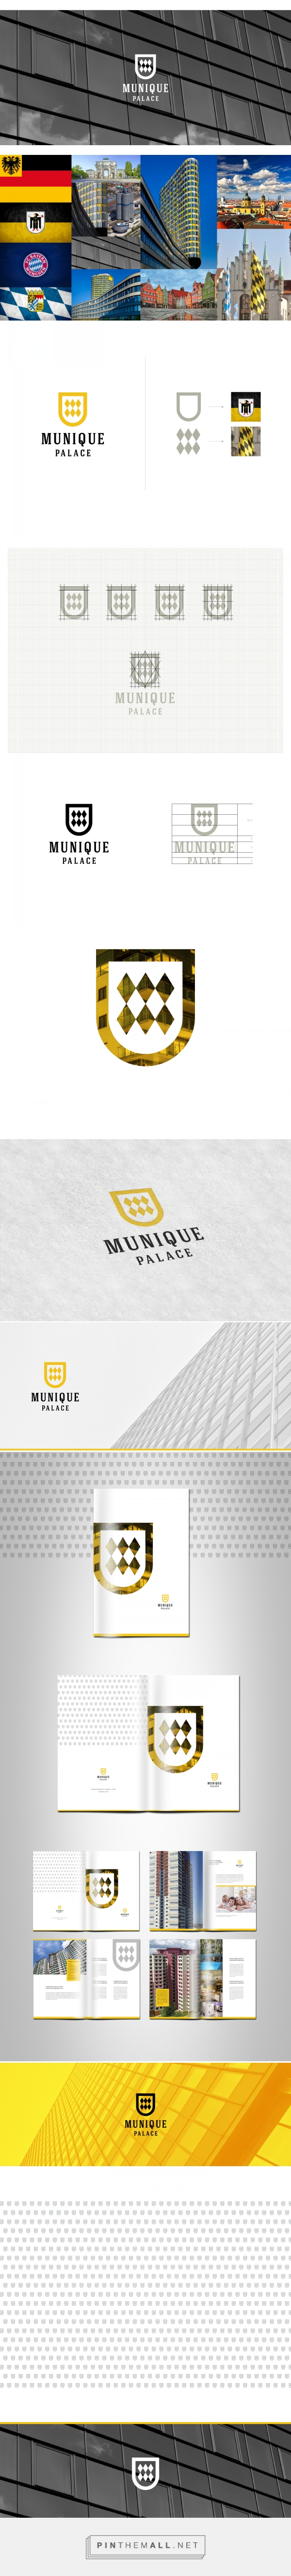 Munique Palace on Behance... - a grouped images picture - Pin Them All